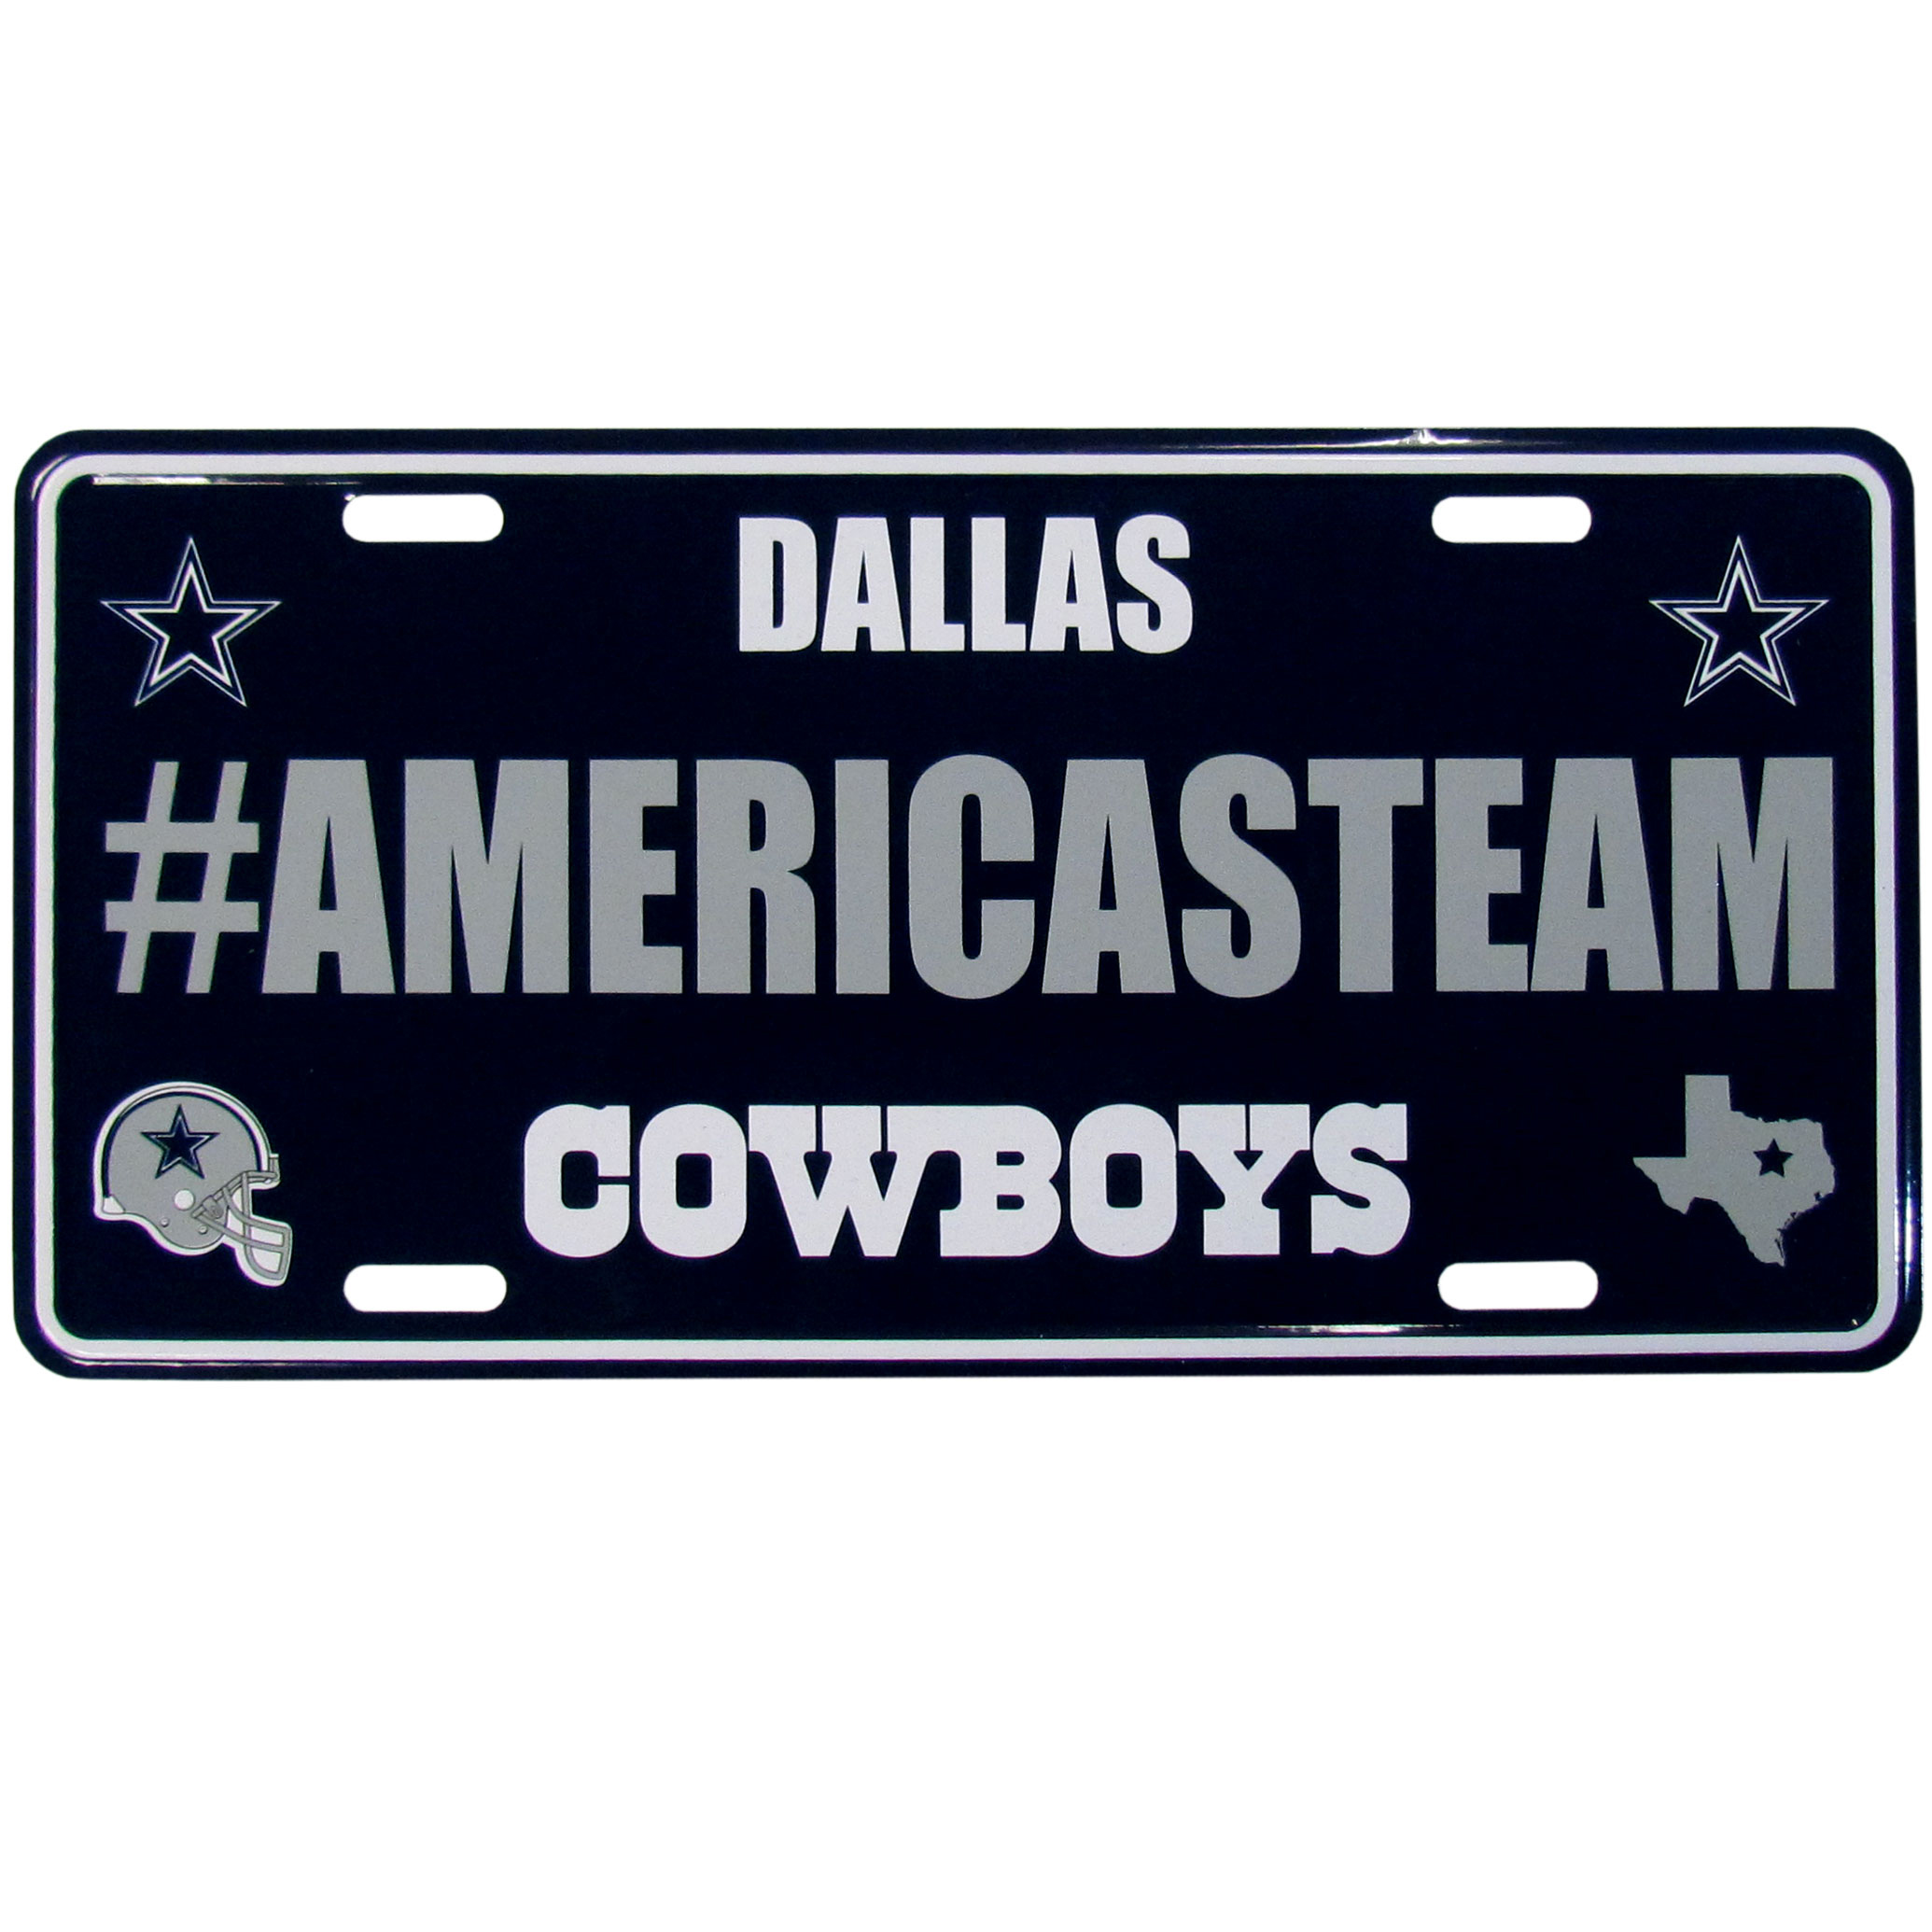 Dallas Cowboys Hashtag License Plate - It's a hashtag world! Celebrate the Dallas Cowboys with this stamped aluminum license plate with the most popular team hashtag! This bright license plate will look great on your vehicle or mounted in your fan cave.